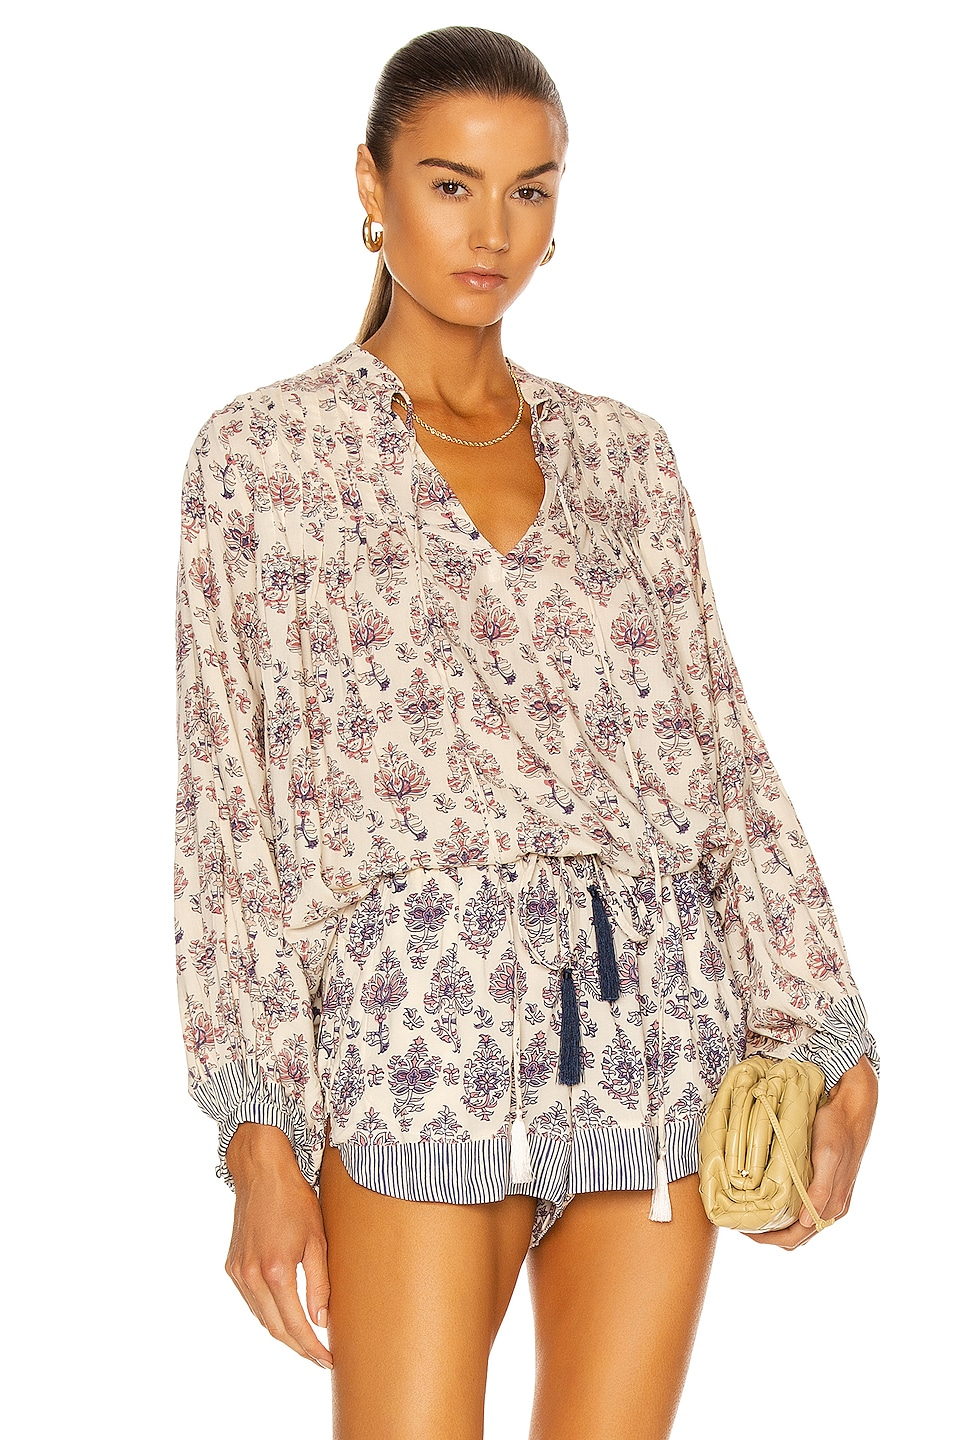 Image 1 of Natalie Martin Lizzy Shirt in Cyprus Print Lilac